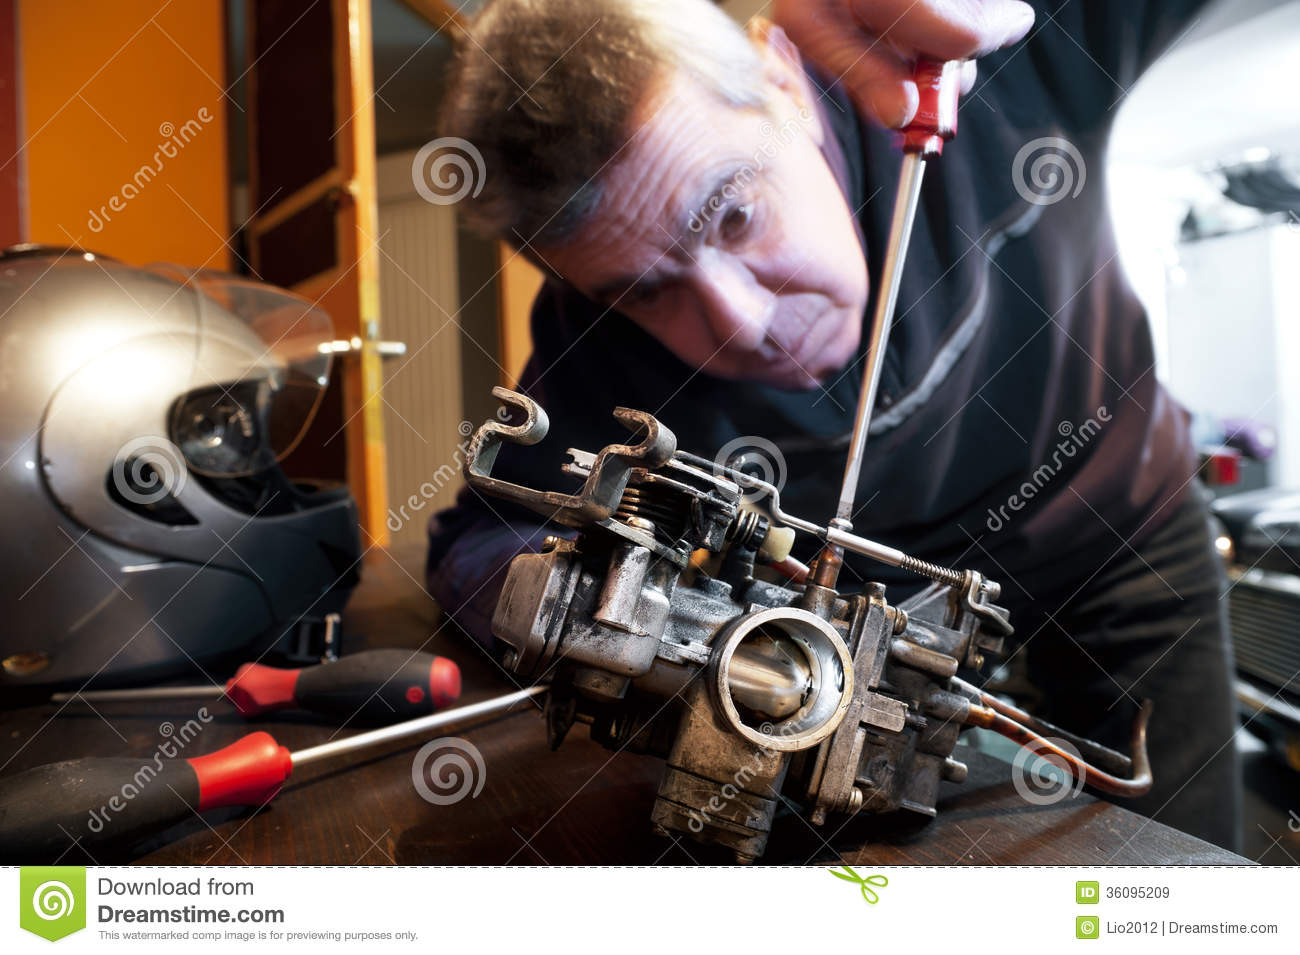 carburetor for motorcycle royalty free stock photography